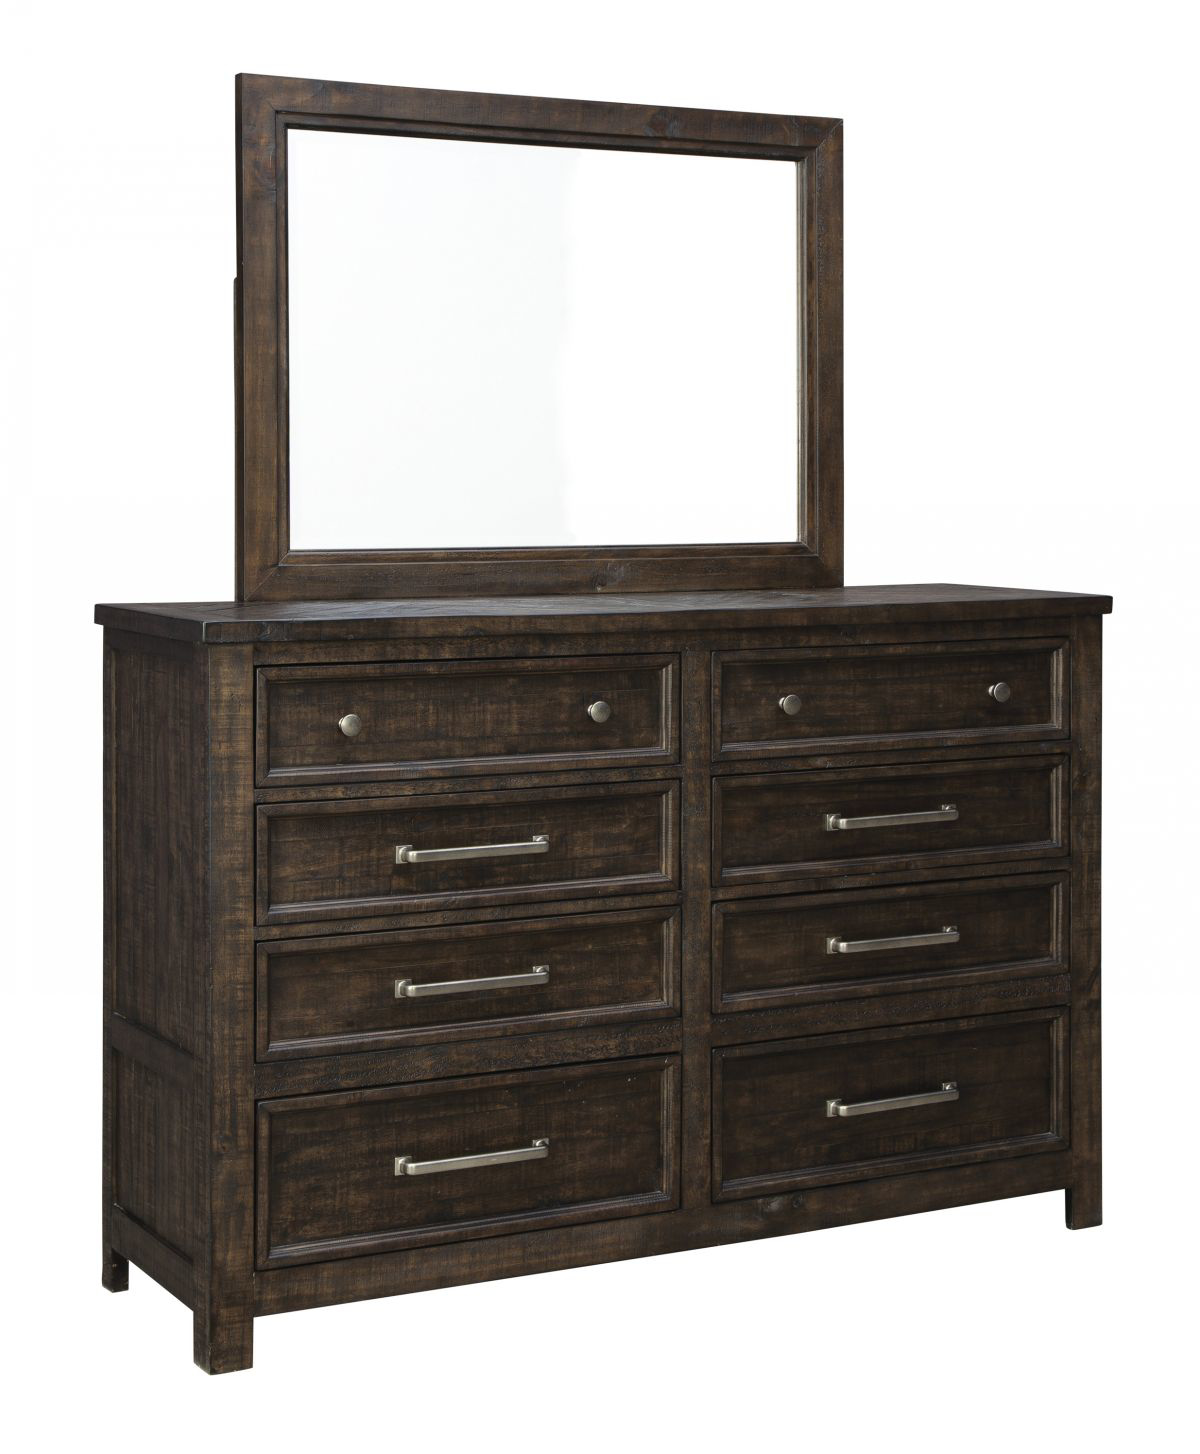 Picture of Hillcott Dresser & Mirror